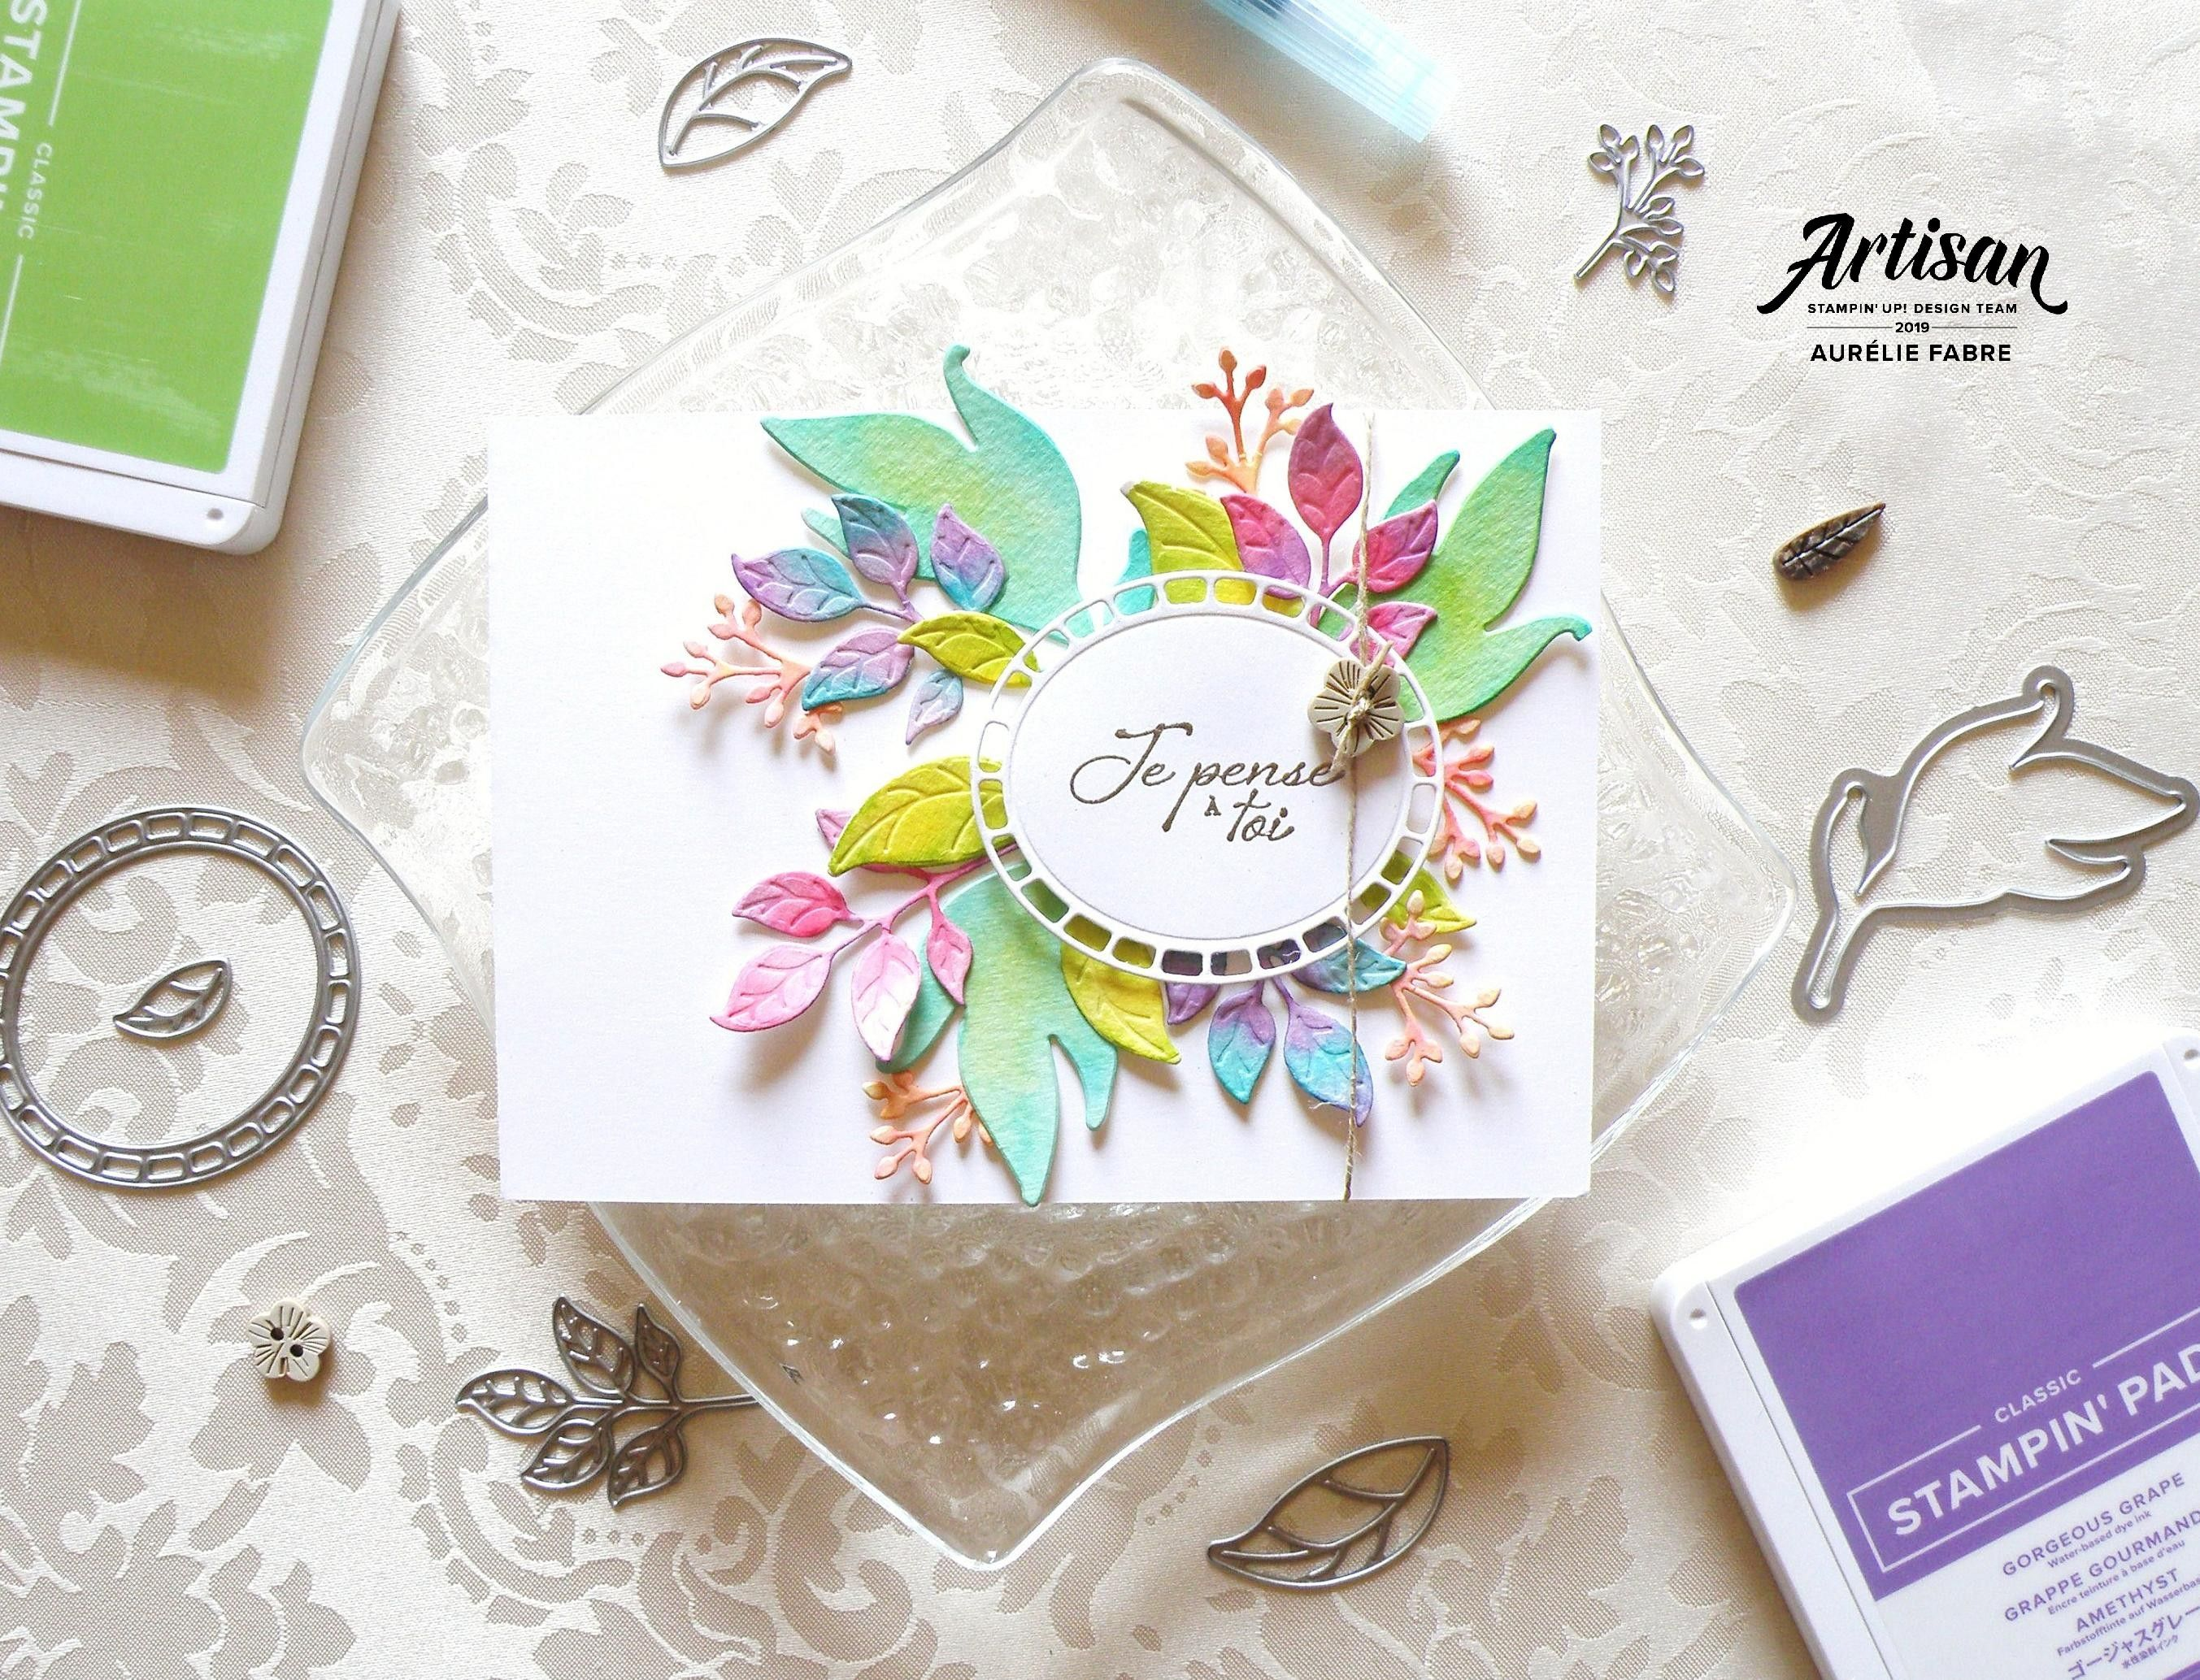 Watercolor Vs Stampin Blends Fond De Carte Cartes A L Aquarelle